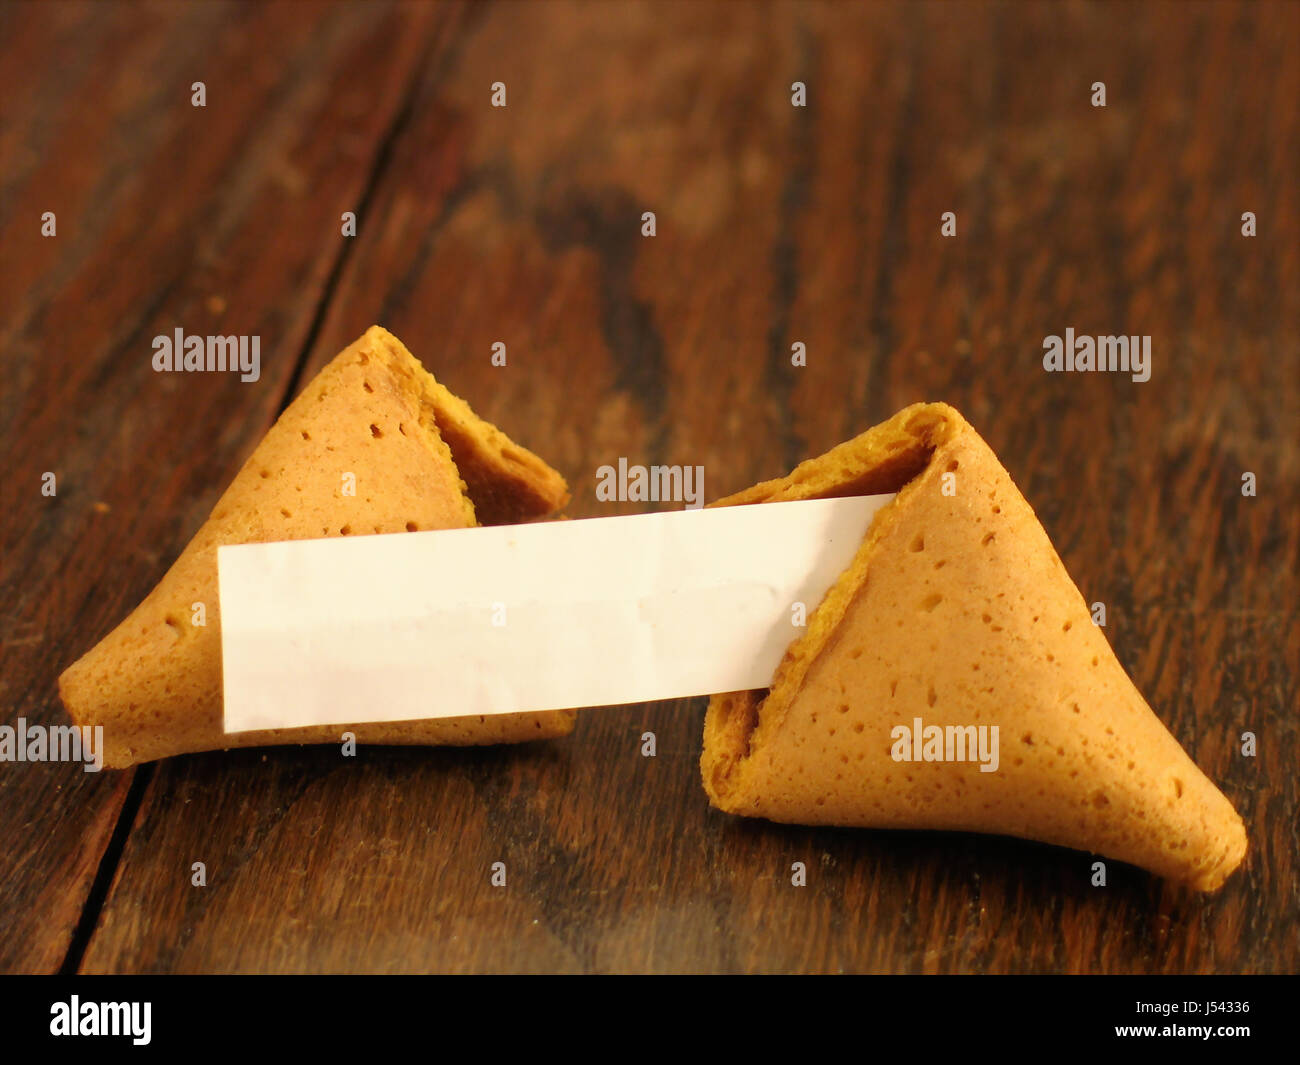 Fortune Cookie With No Text On Wood Stock Photo Alamy